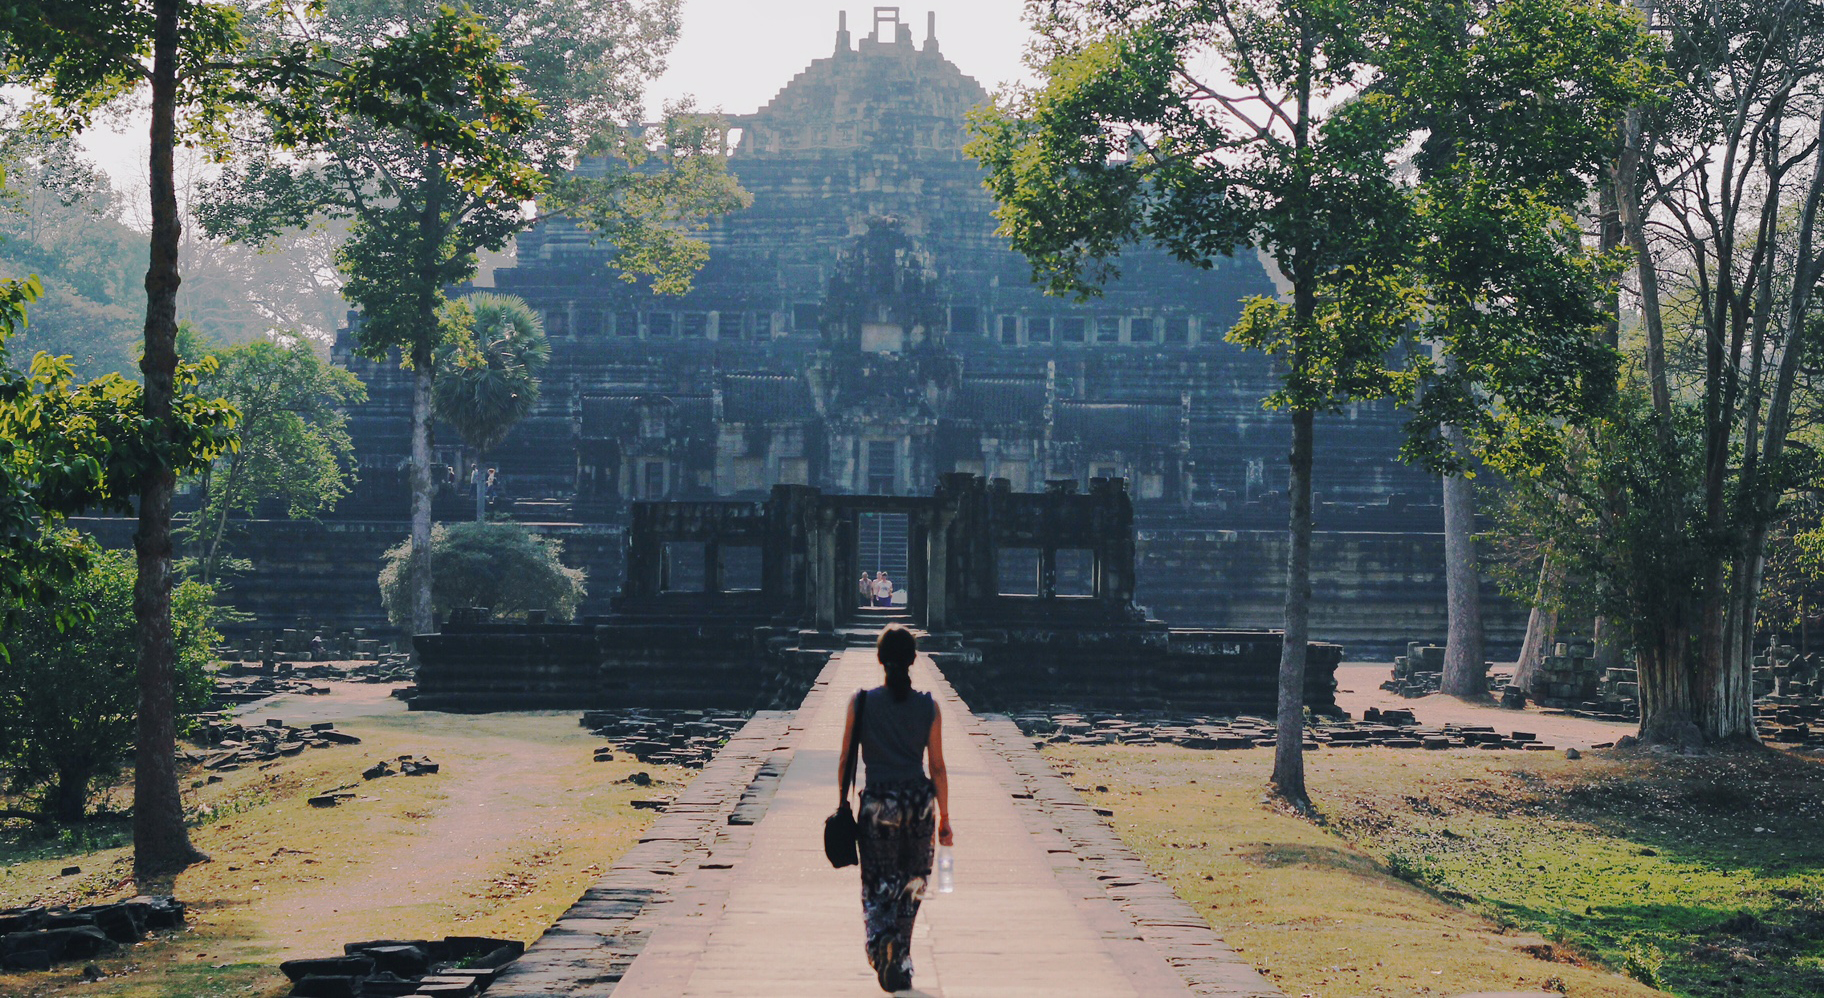 4 Things I Realised About Life When I Visited Cambodia